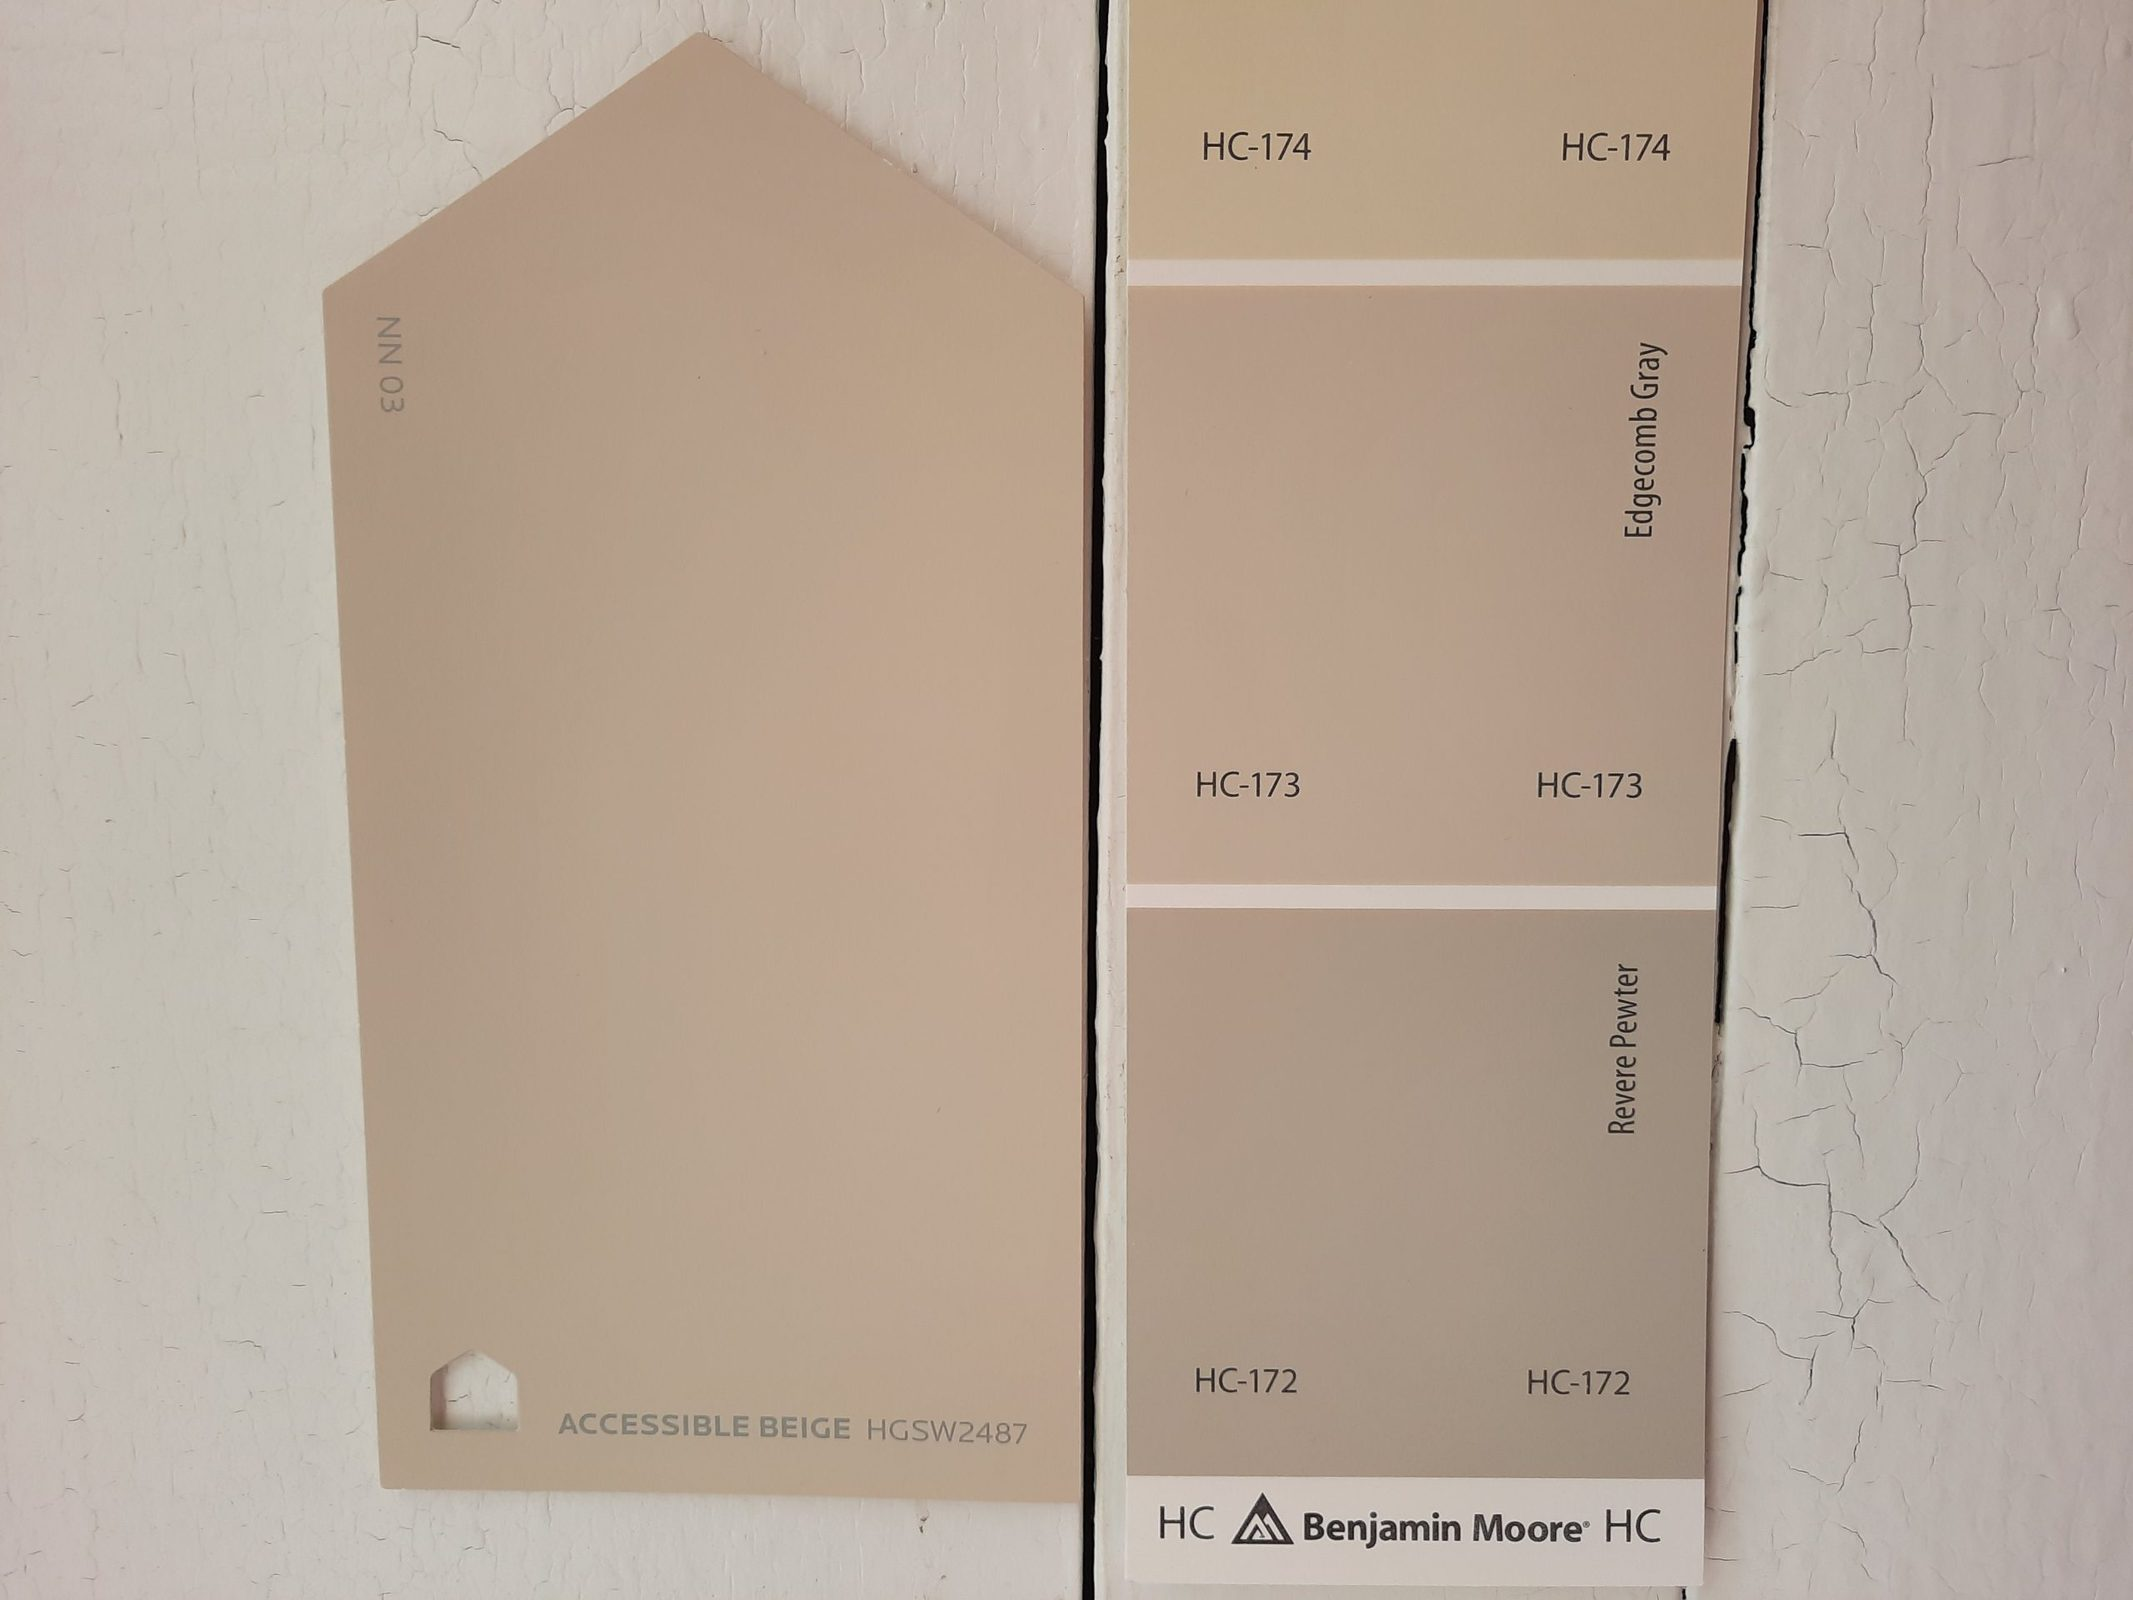 8 Accessible Beige vs Edgecomb Gray scaled